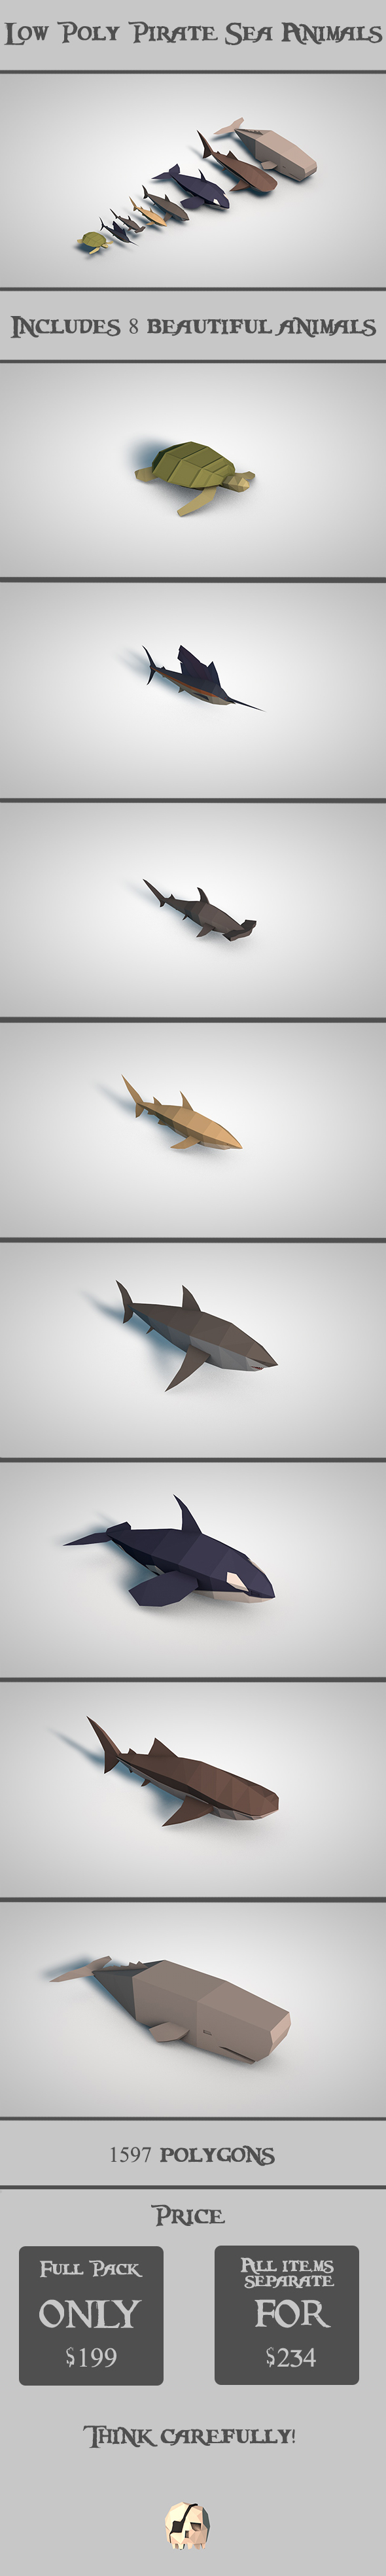 3DOcean Low Poly Pirate Sea Animals 19490589